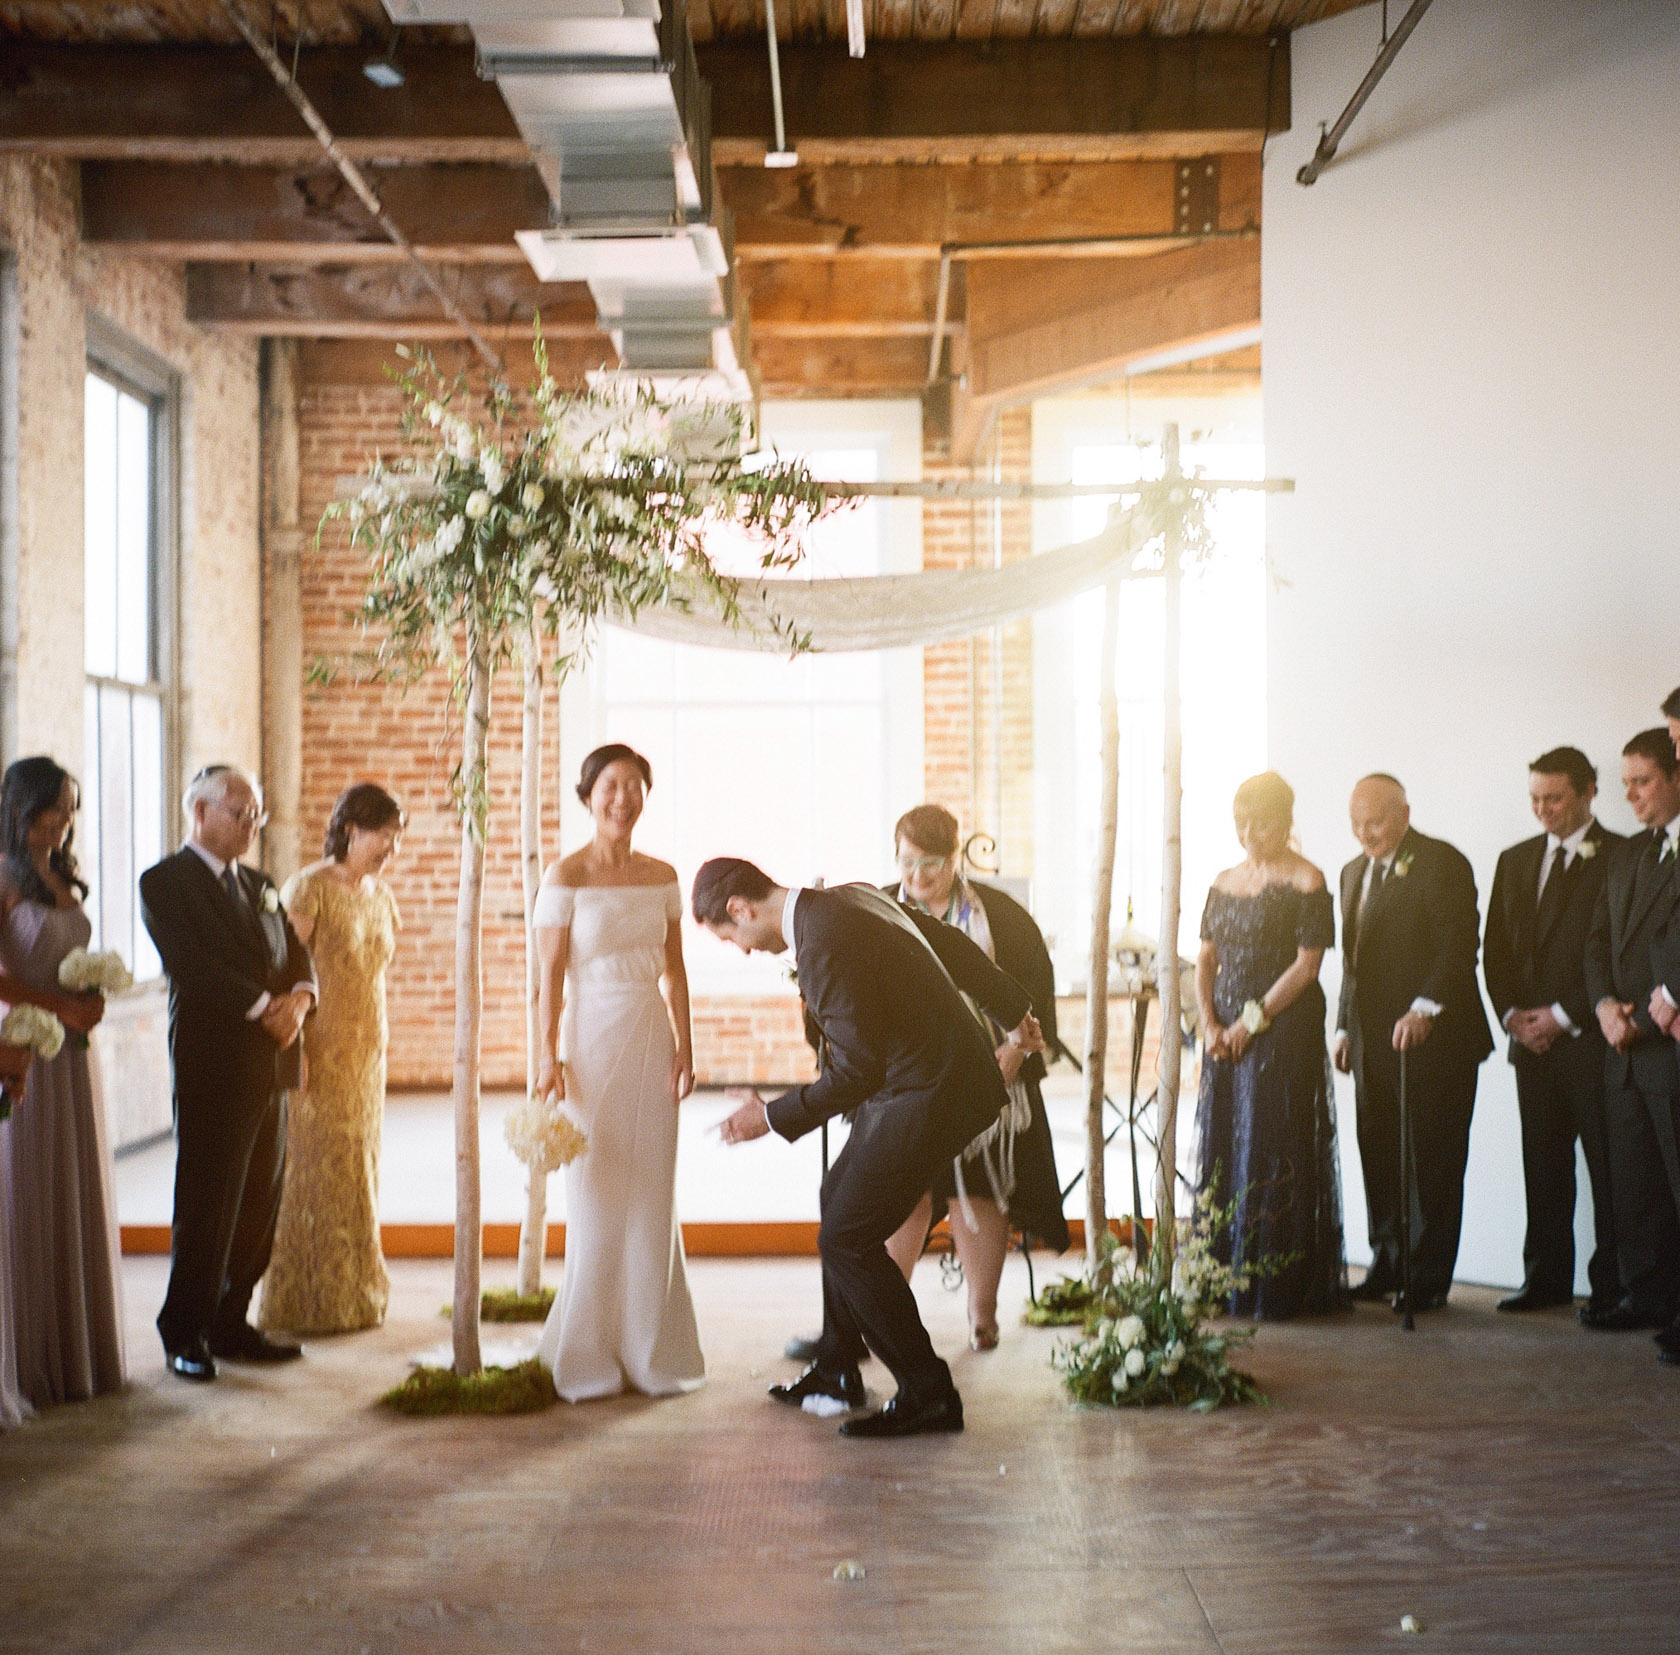 new orleans wedding ceremony on film at cac - 07